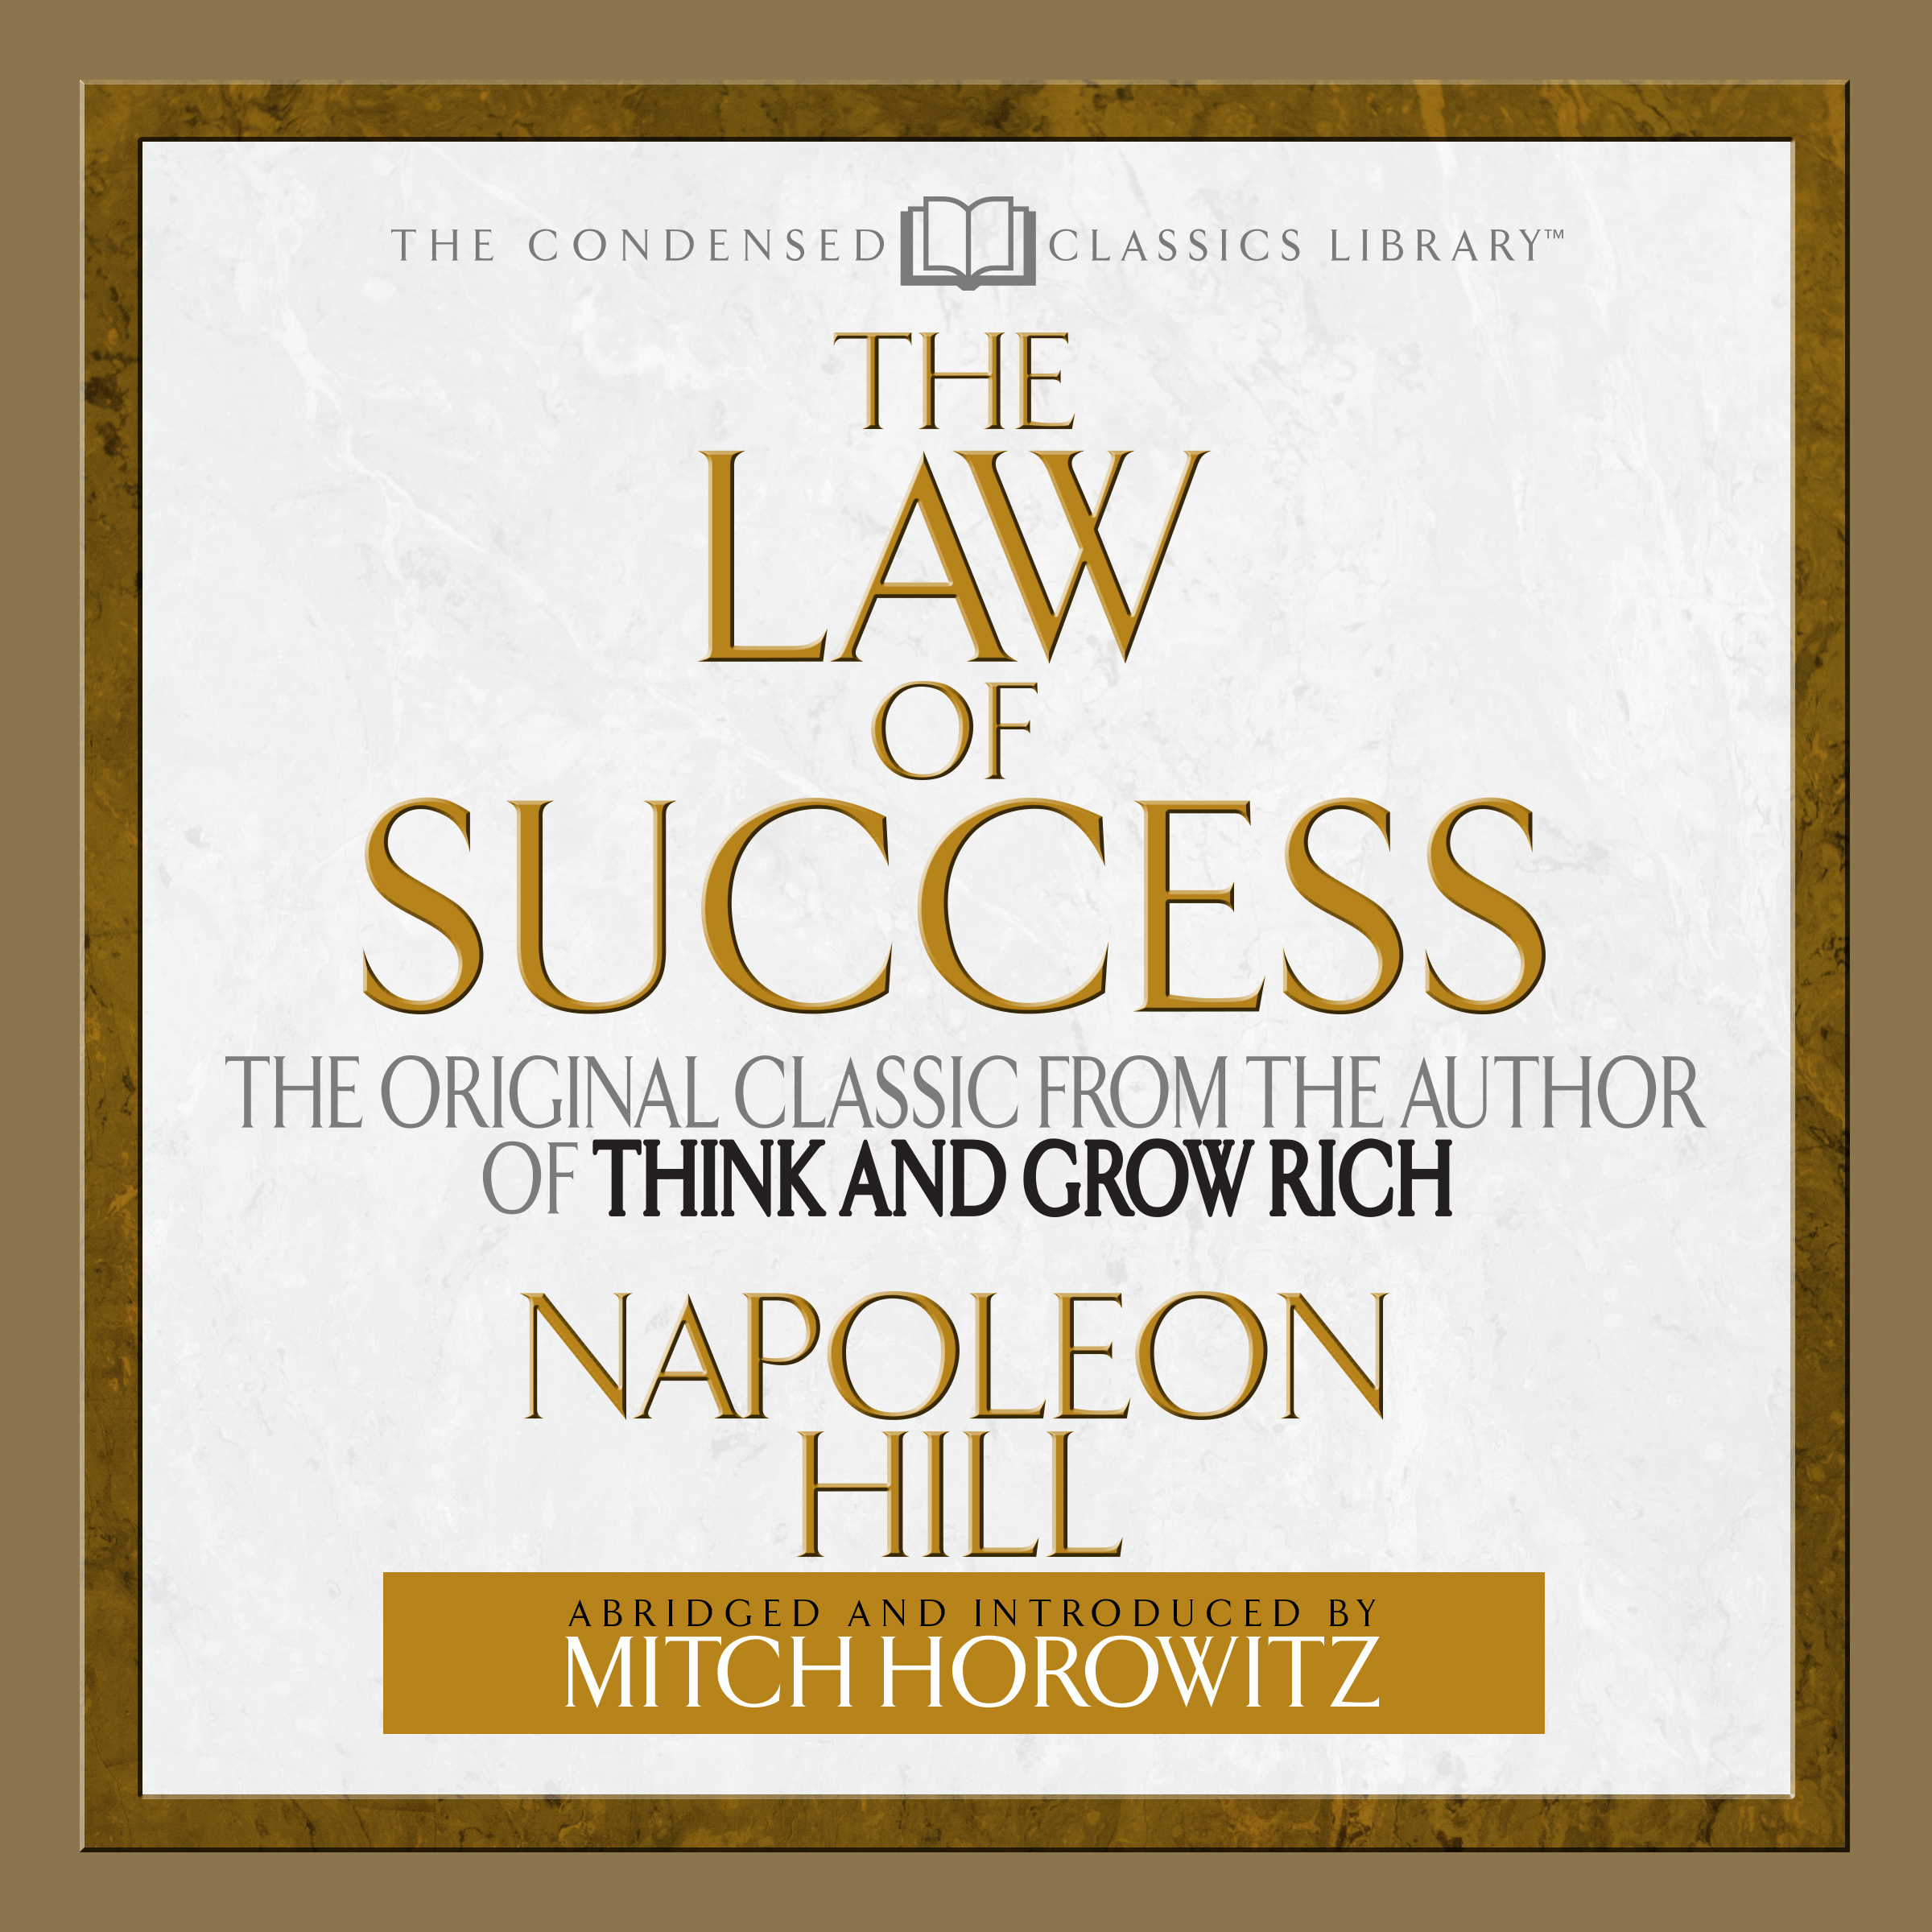 Printable The Law of Success: The Original Classic From the Author of THINK AND GROW RICH (Abridged) Audiobook Cover Art